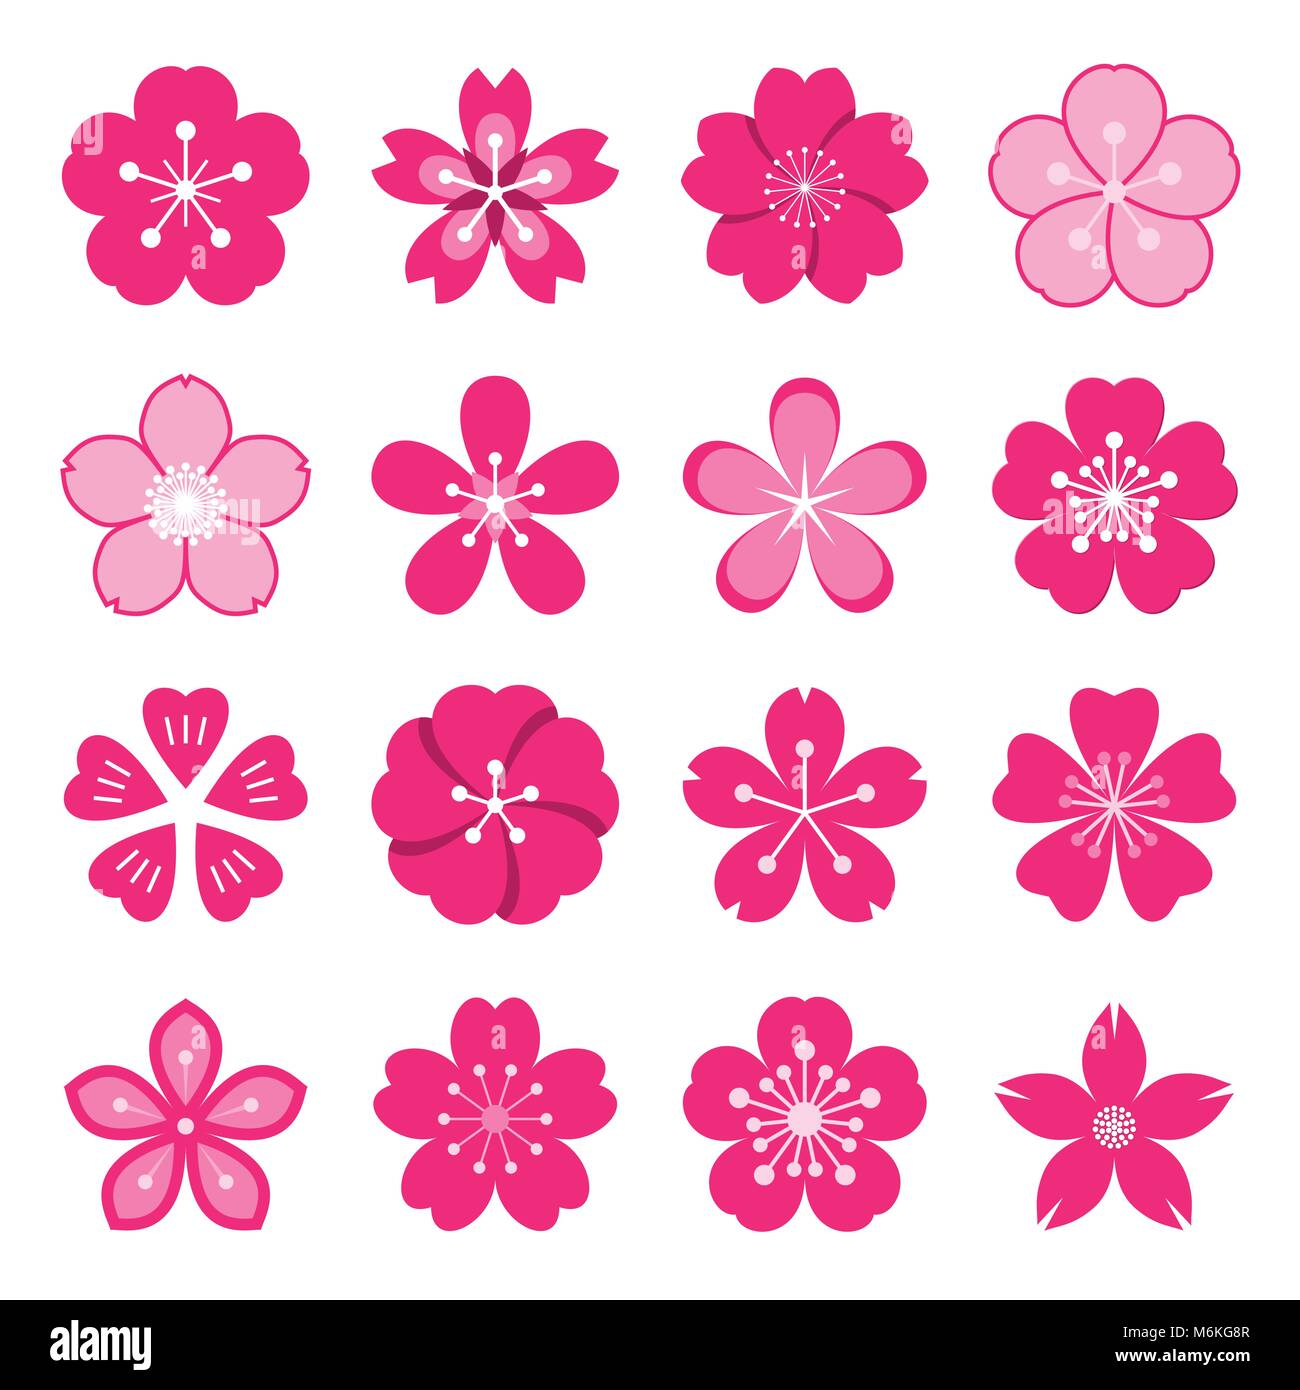 sakura icons collection of 16 colored ume japanese cherry blossom